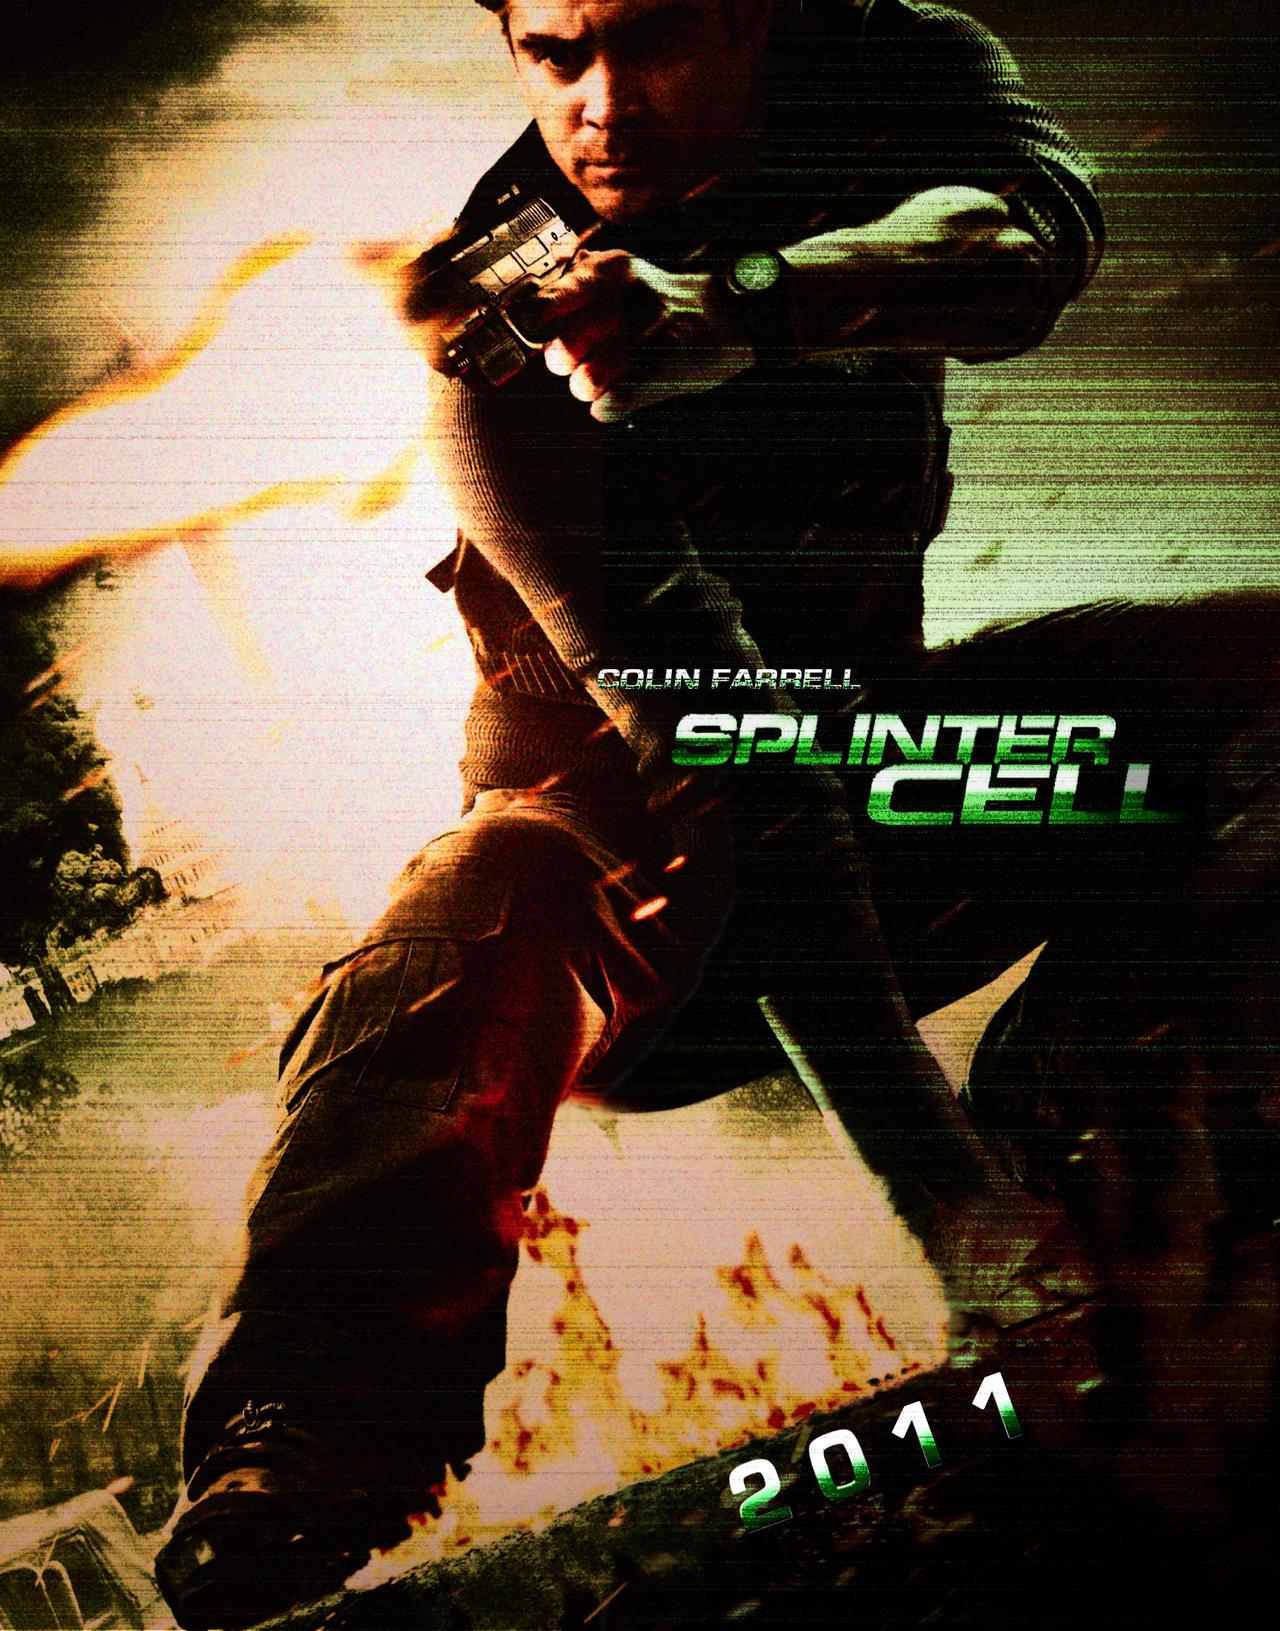 Splinter Cell - Movie Poster by Alex-Bond on DeviantArt